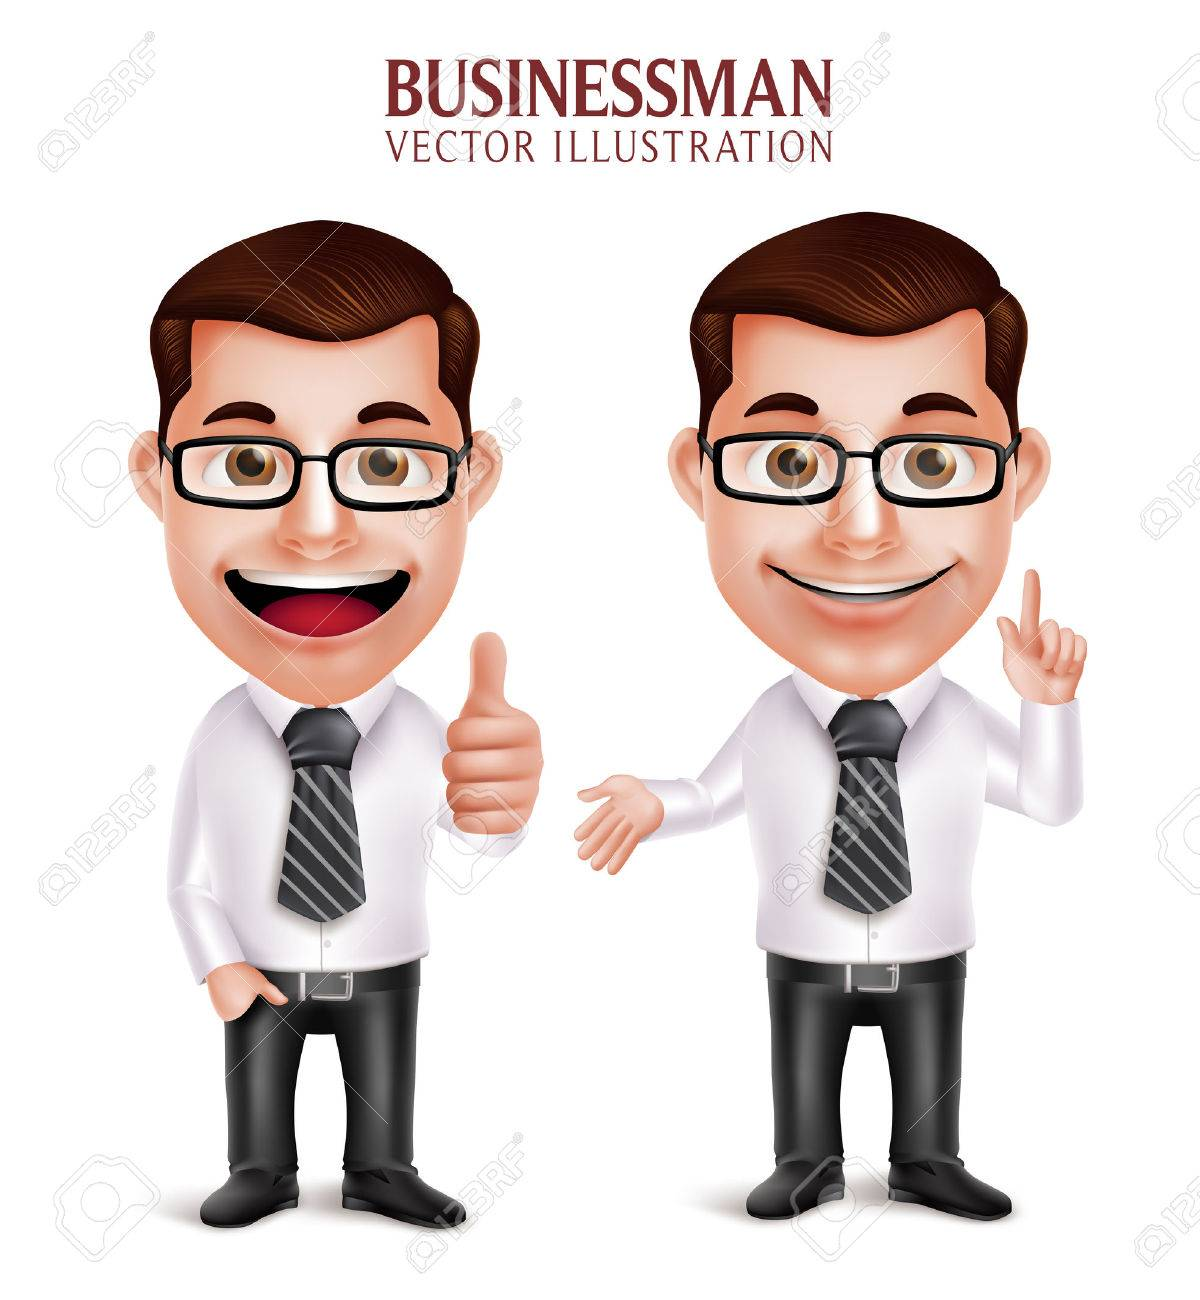 Set of 3D Realistic Professional Business Man Character with Pointing and OK Hand Gesture Isolated in White Background. Vector Illustration - 49379272